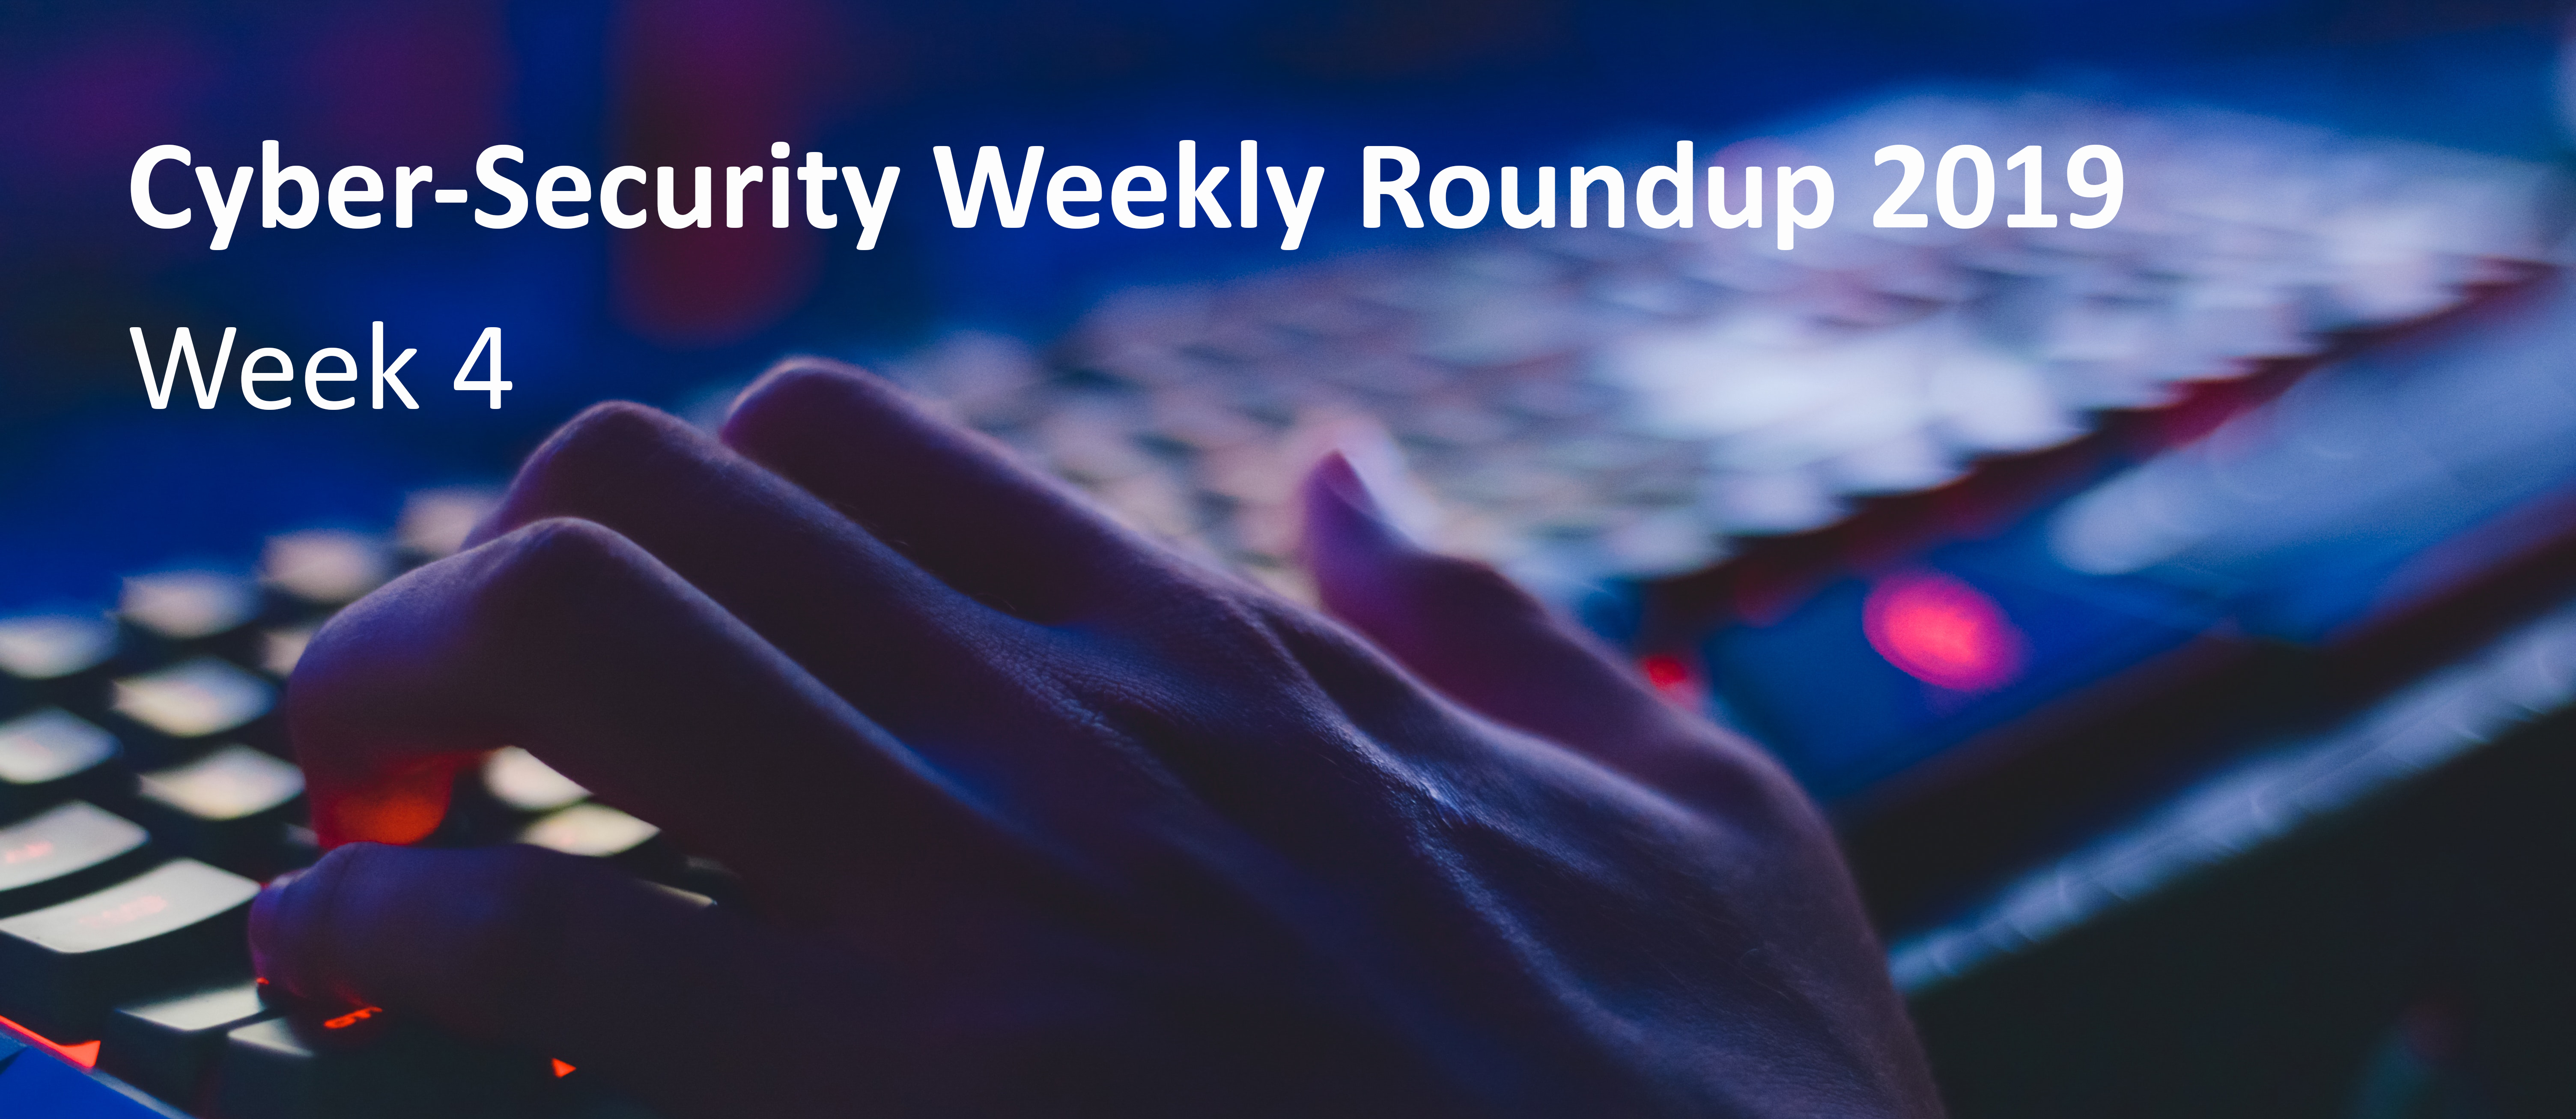 Cyber Attack Weekly Round Up wk 4